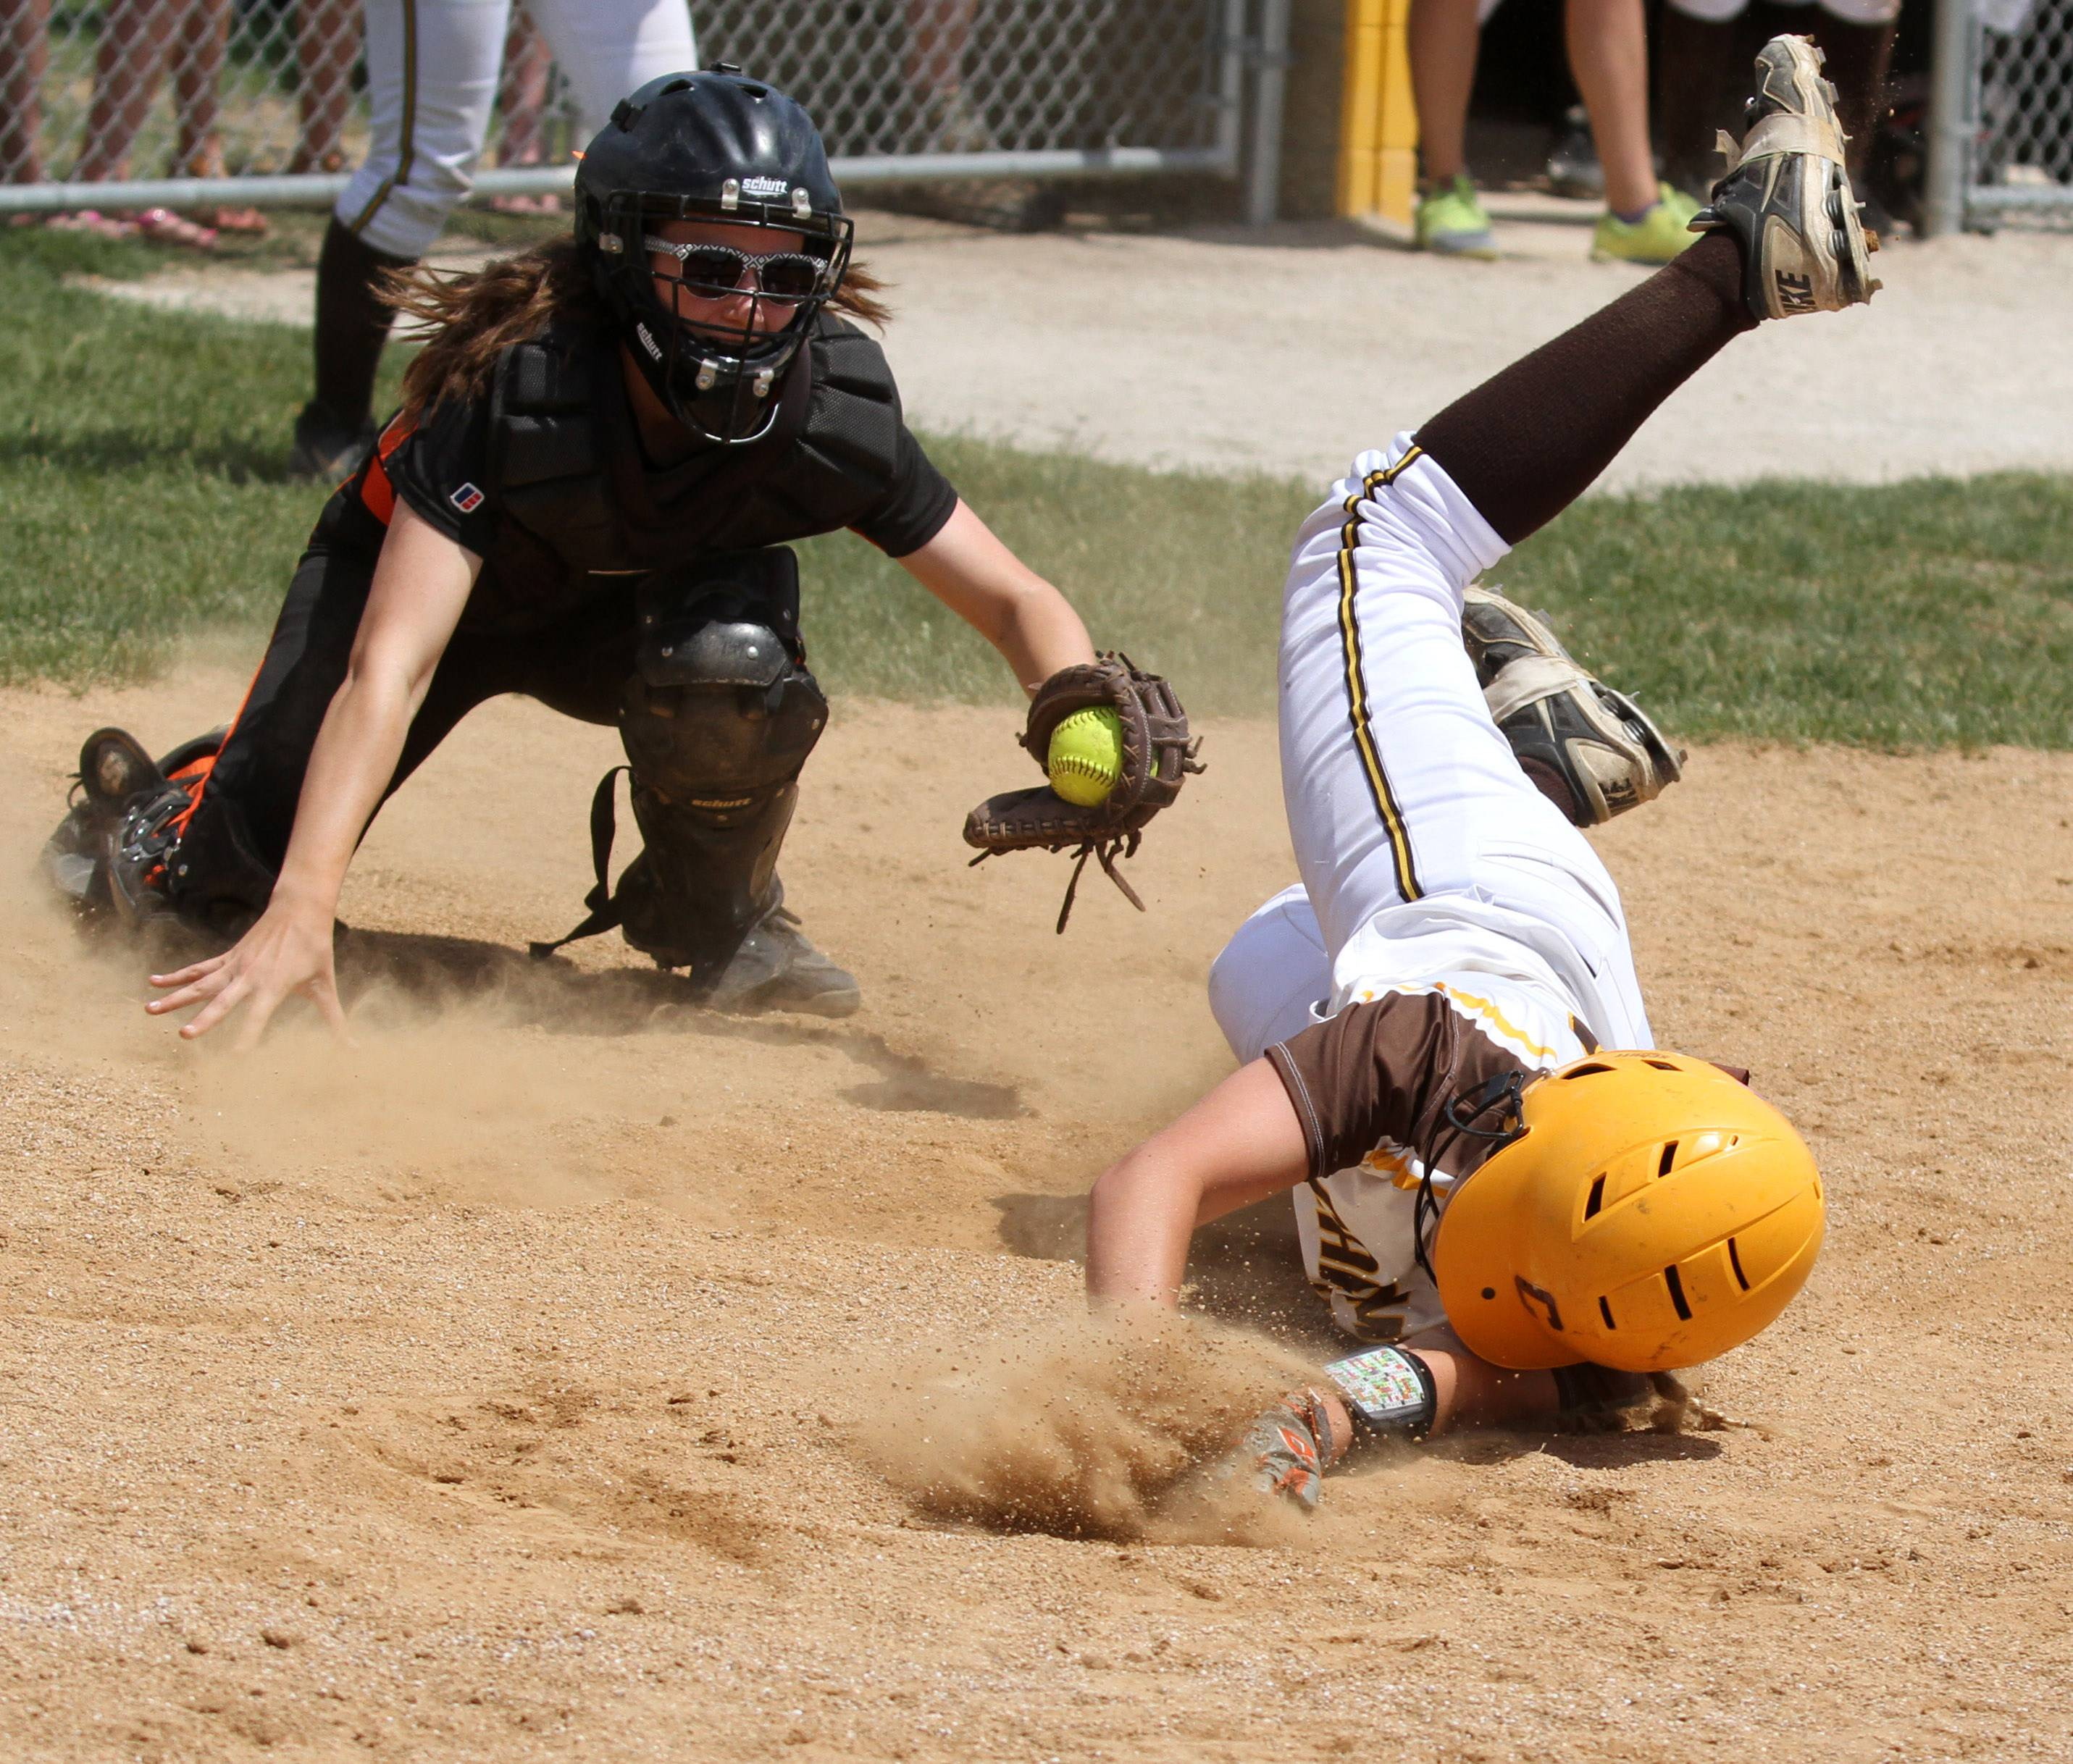 Libertyville catcher Andi Katz is able to tag out Carmel's Amy Abel at home plate in the Wildcats' Class 4A regional victory Saturday.